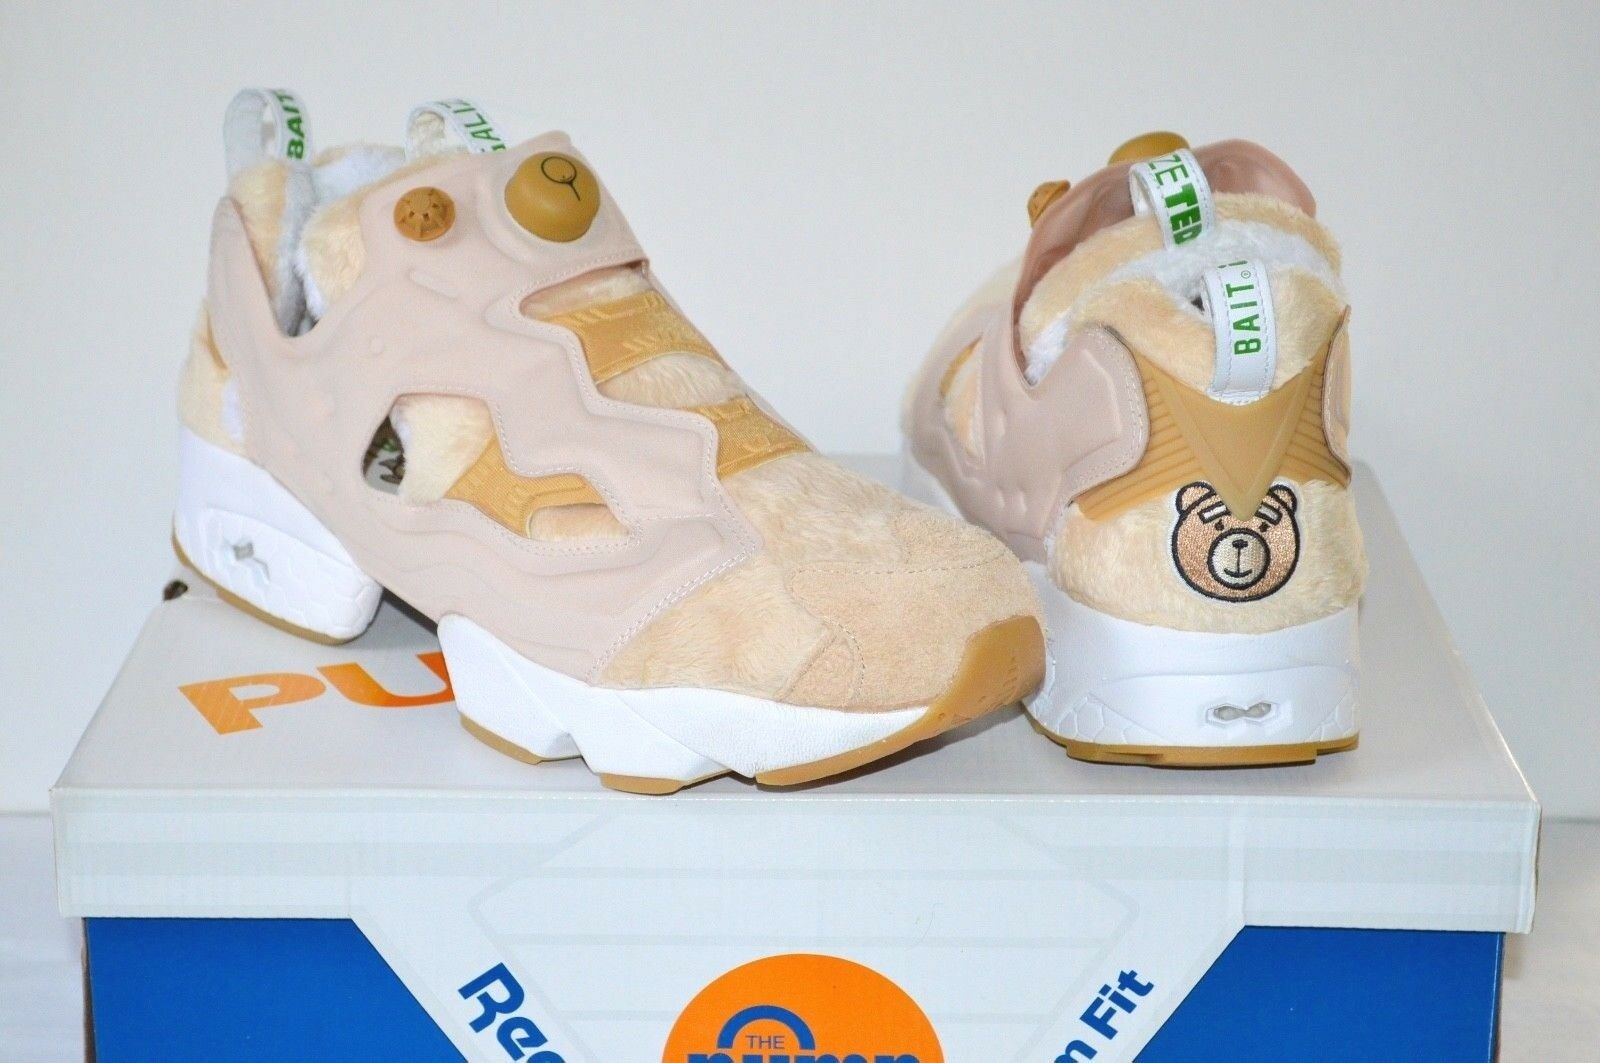 Reebok InstaPump Pump Fury Legalize Happy Ted 2 x Bait sz 11.5 Tan Front w Box